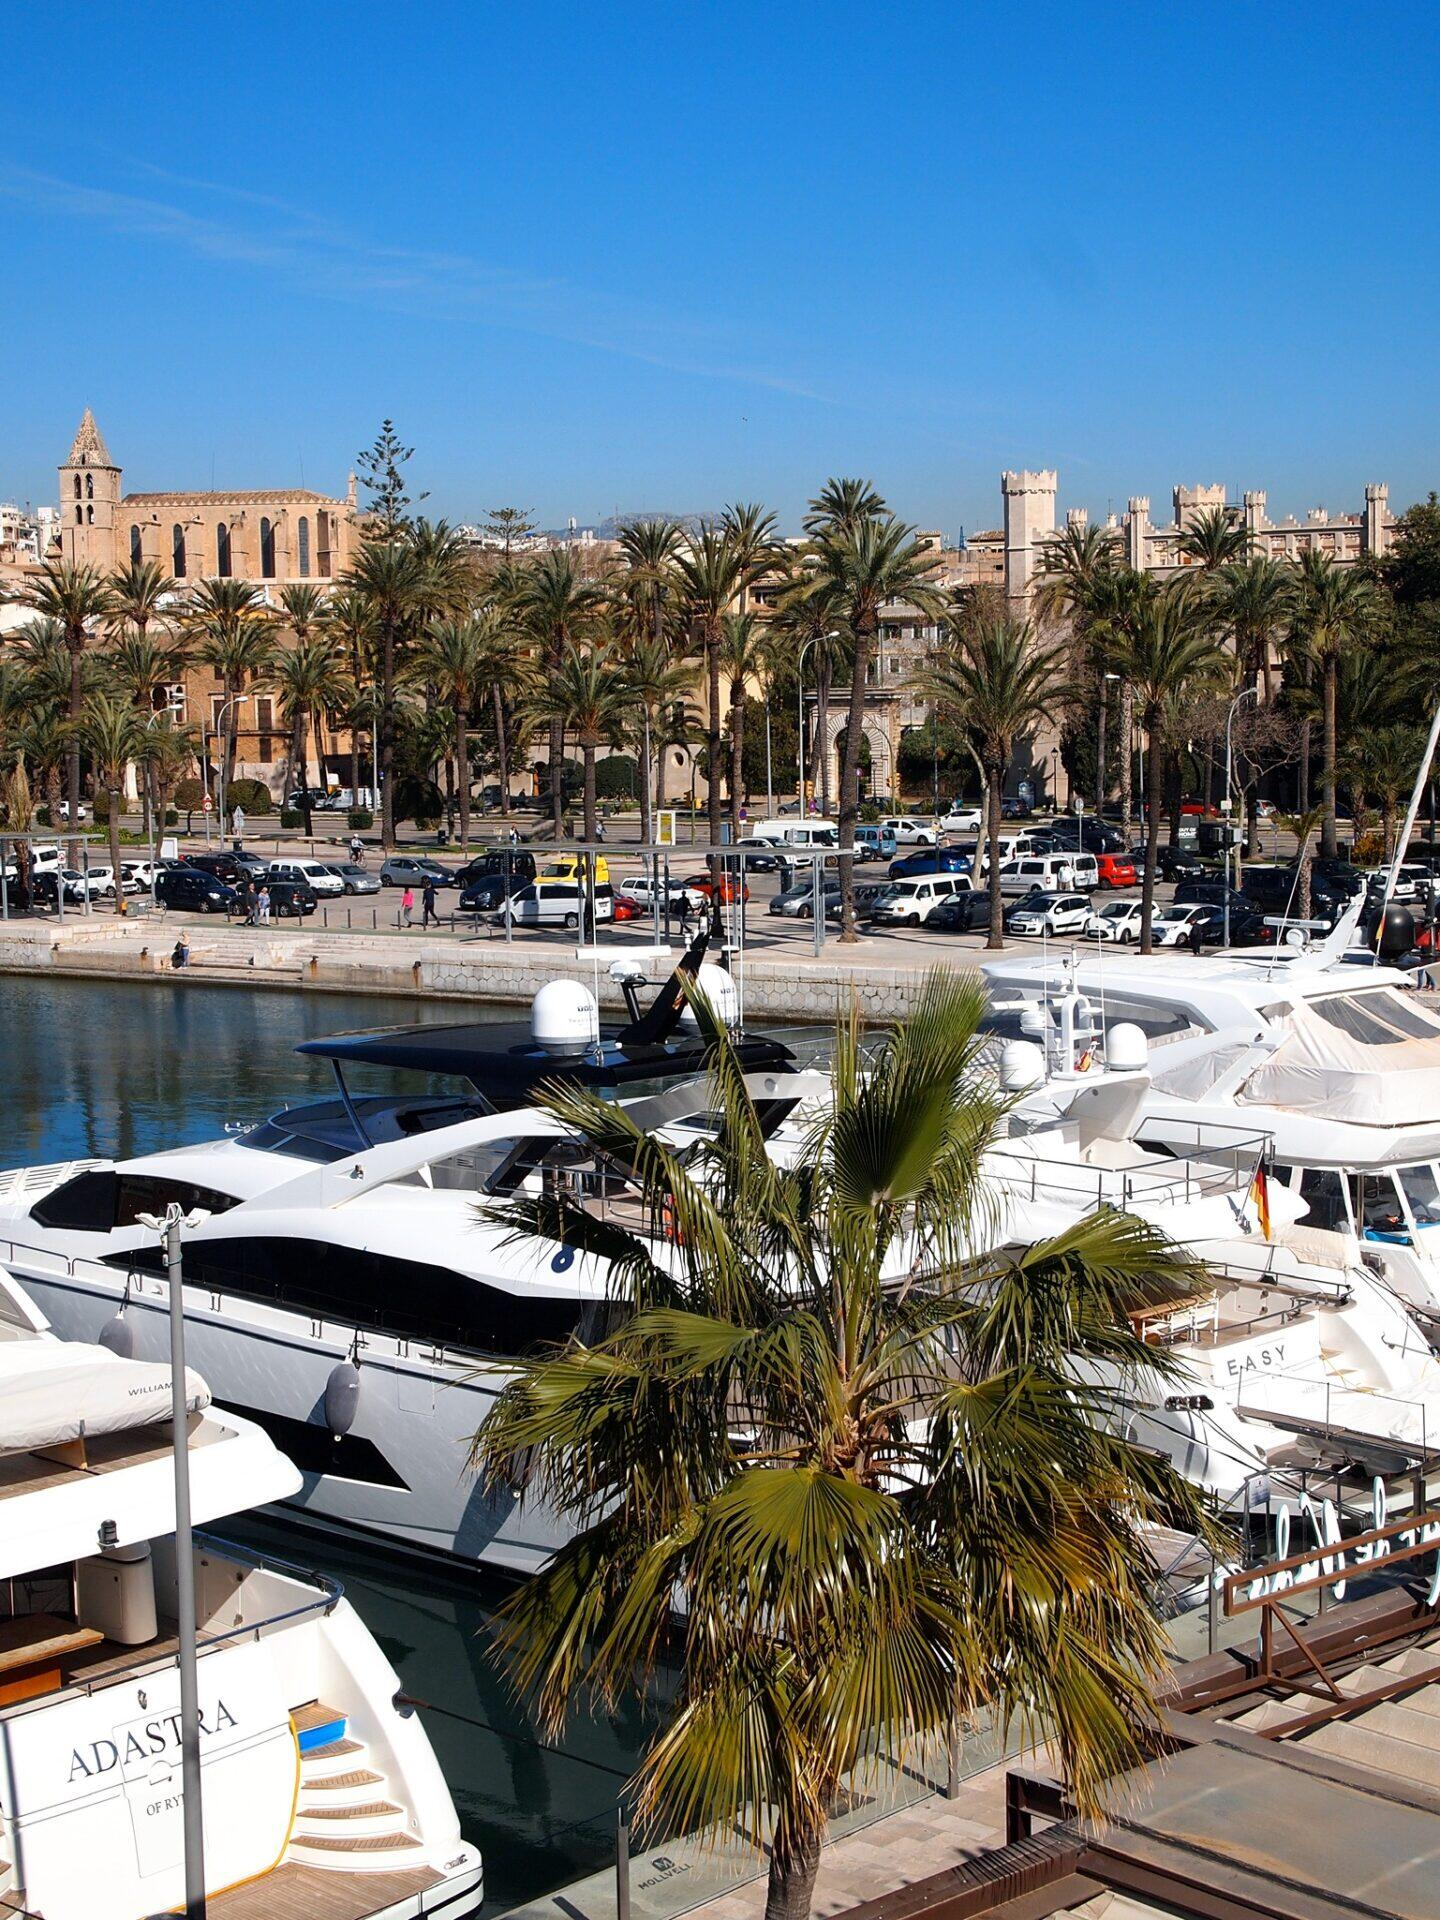 The 2 night Travel Guide to Palma, Mallorca by the Marina